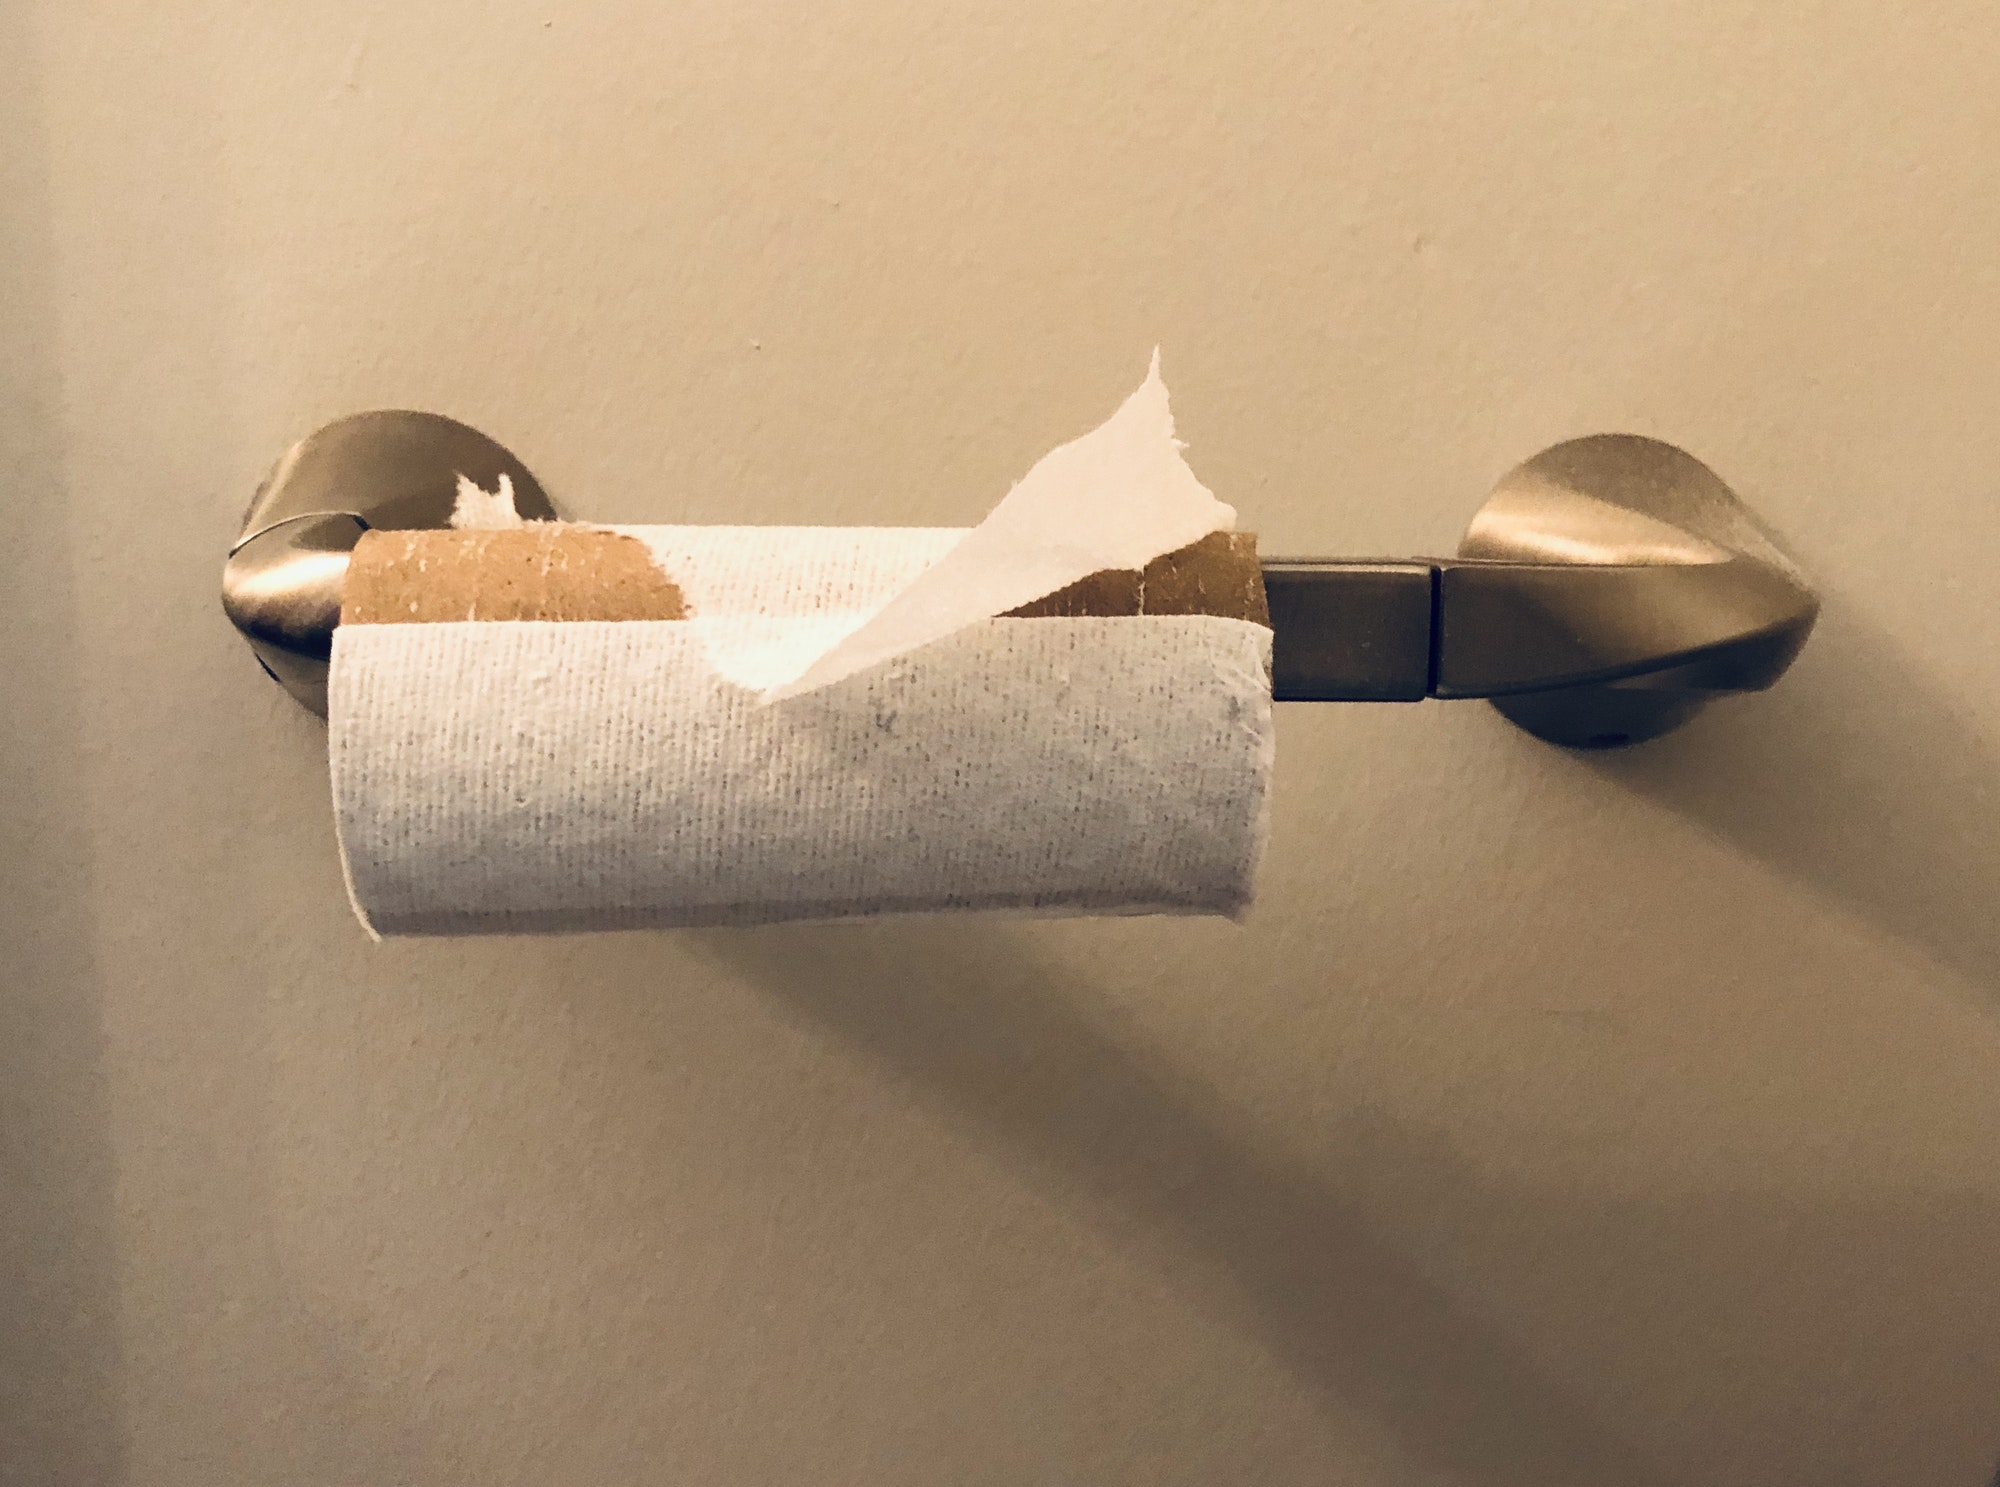 Almost finished empty toilet paper roll